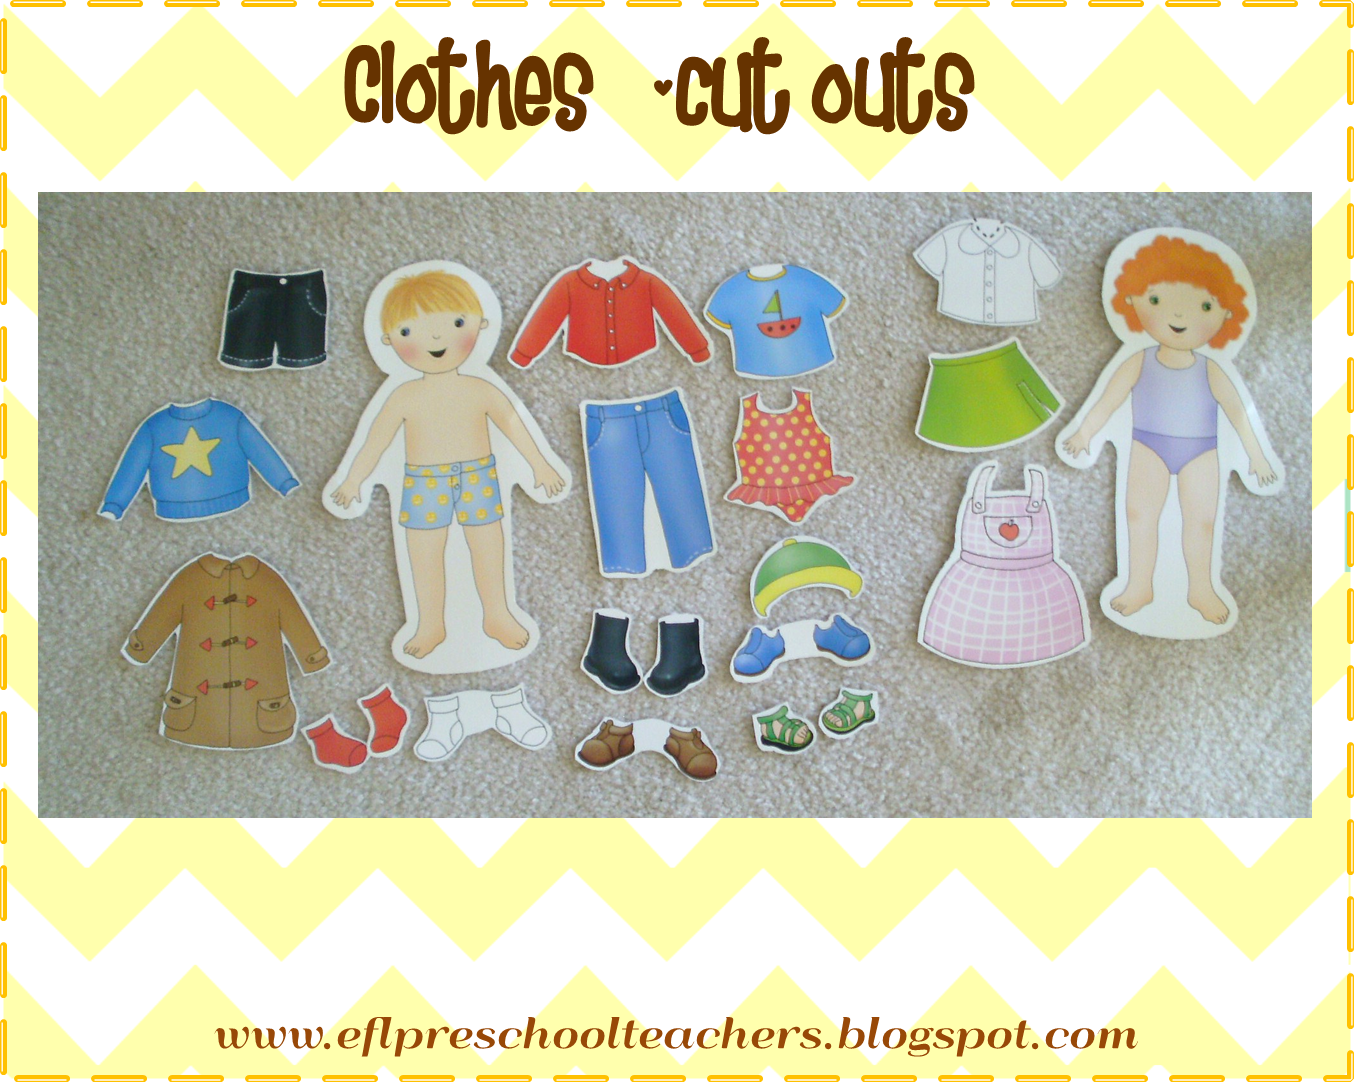 Esl Efl Preschool Teachers Clothes Theme For Preschool Ell